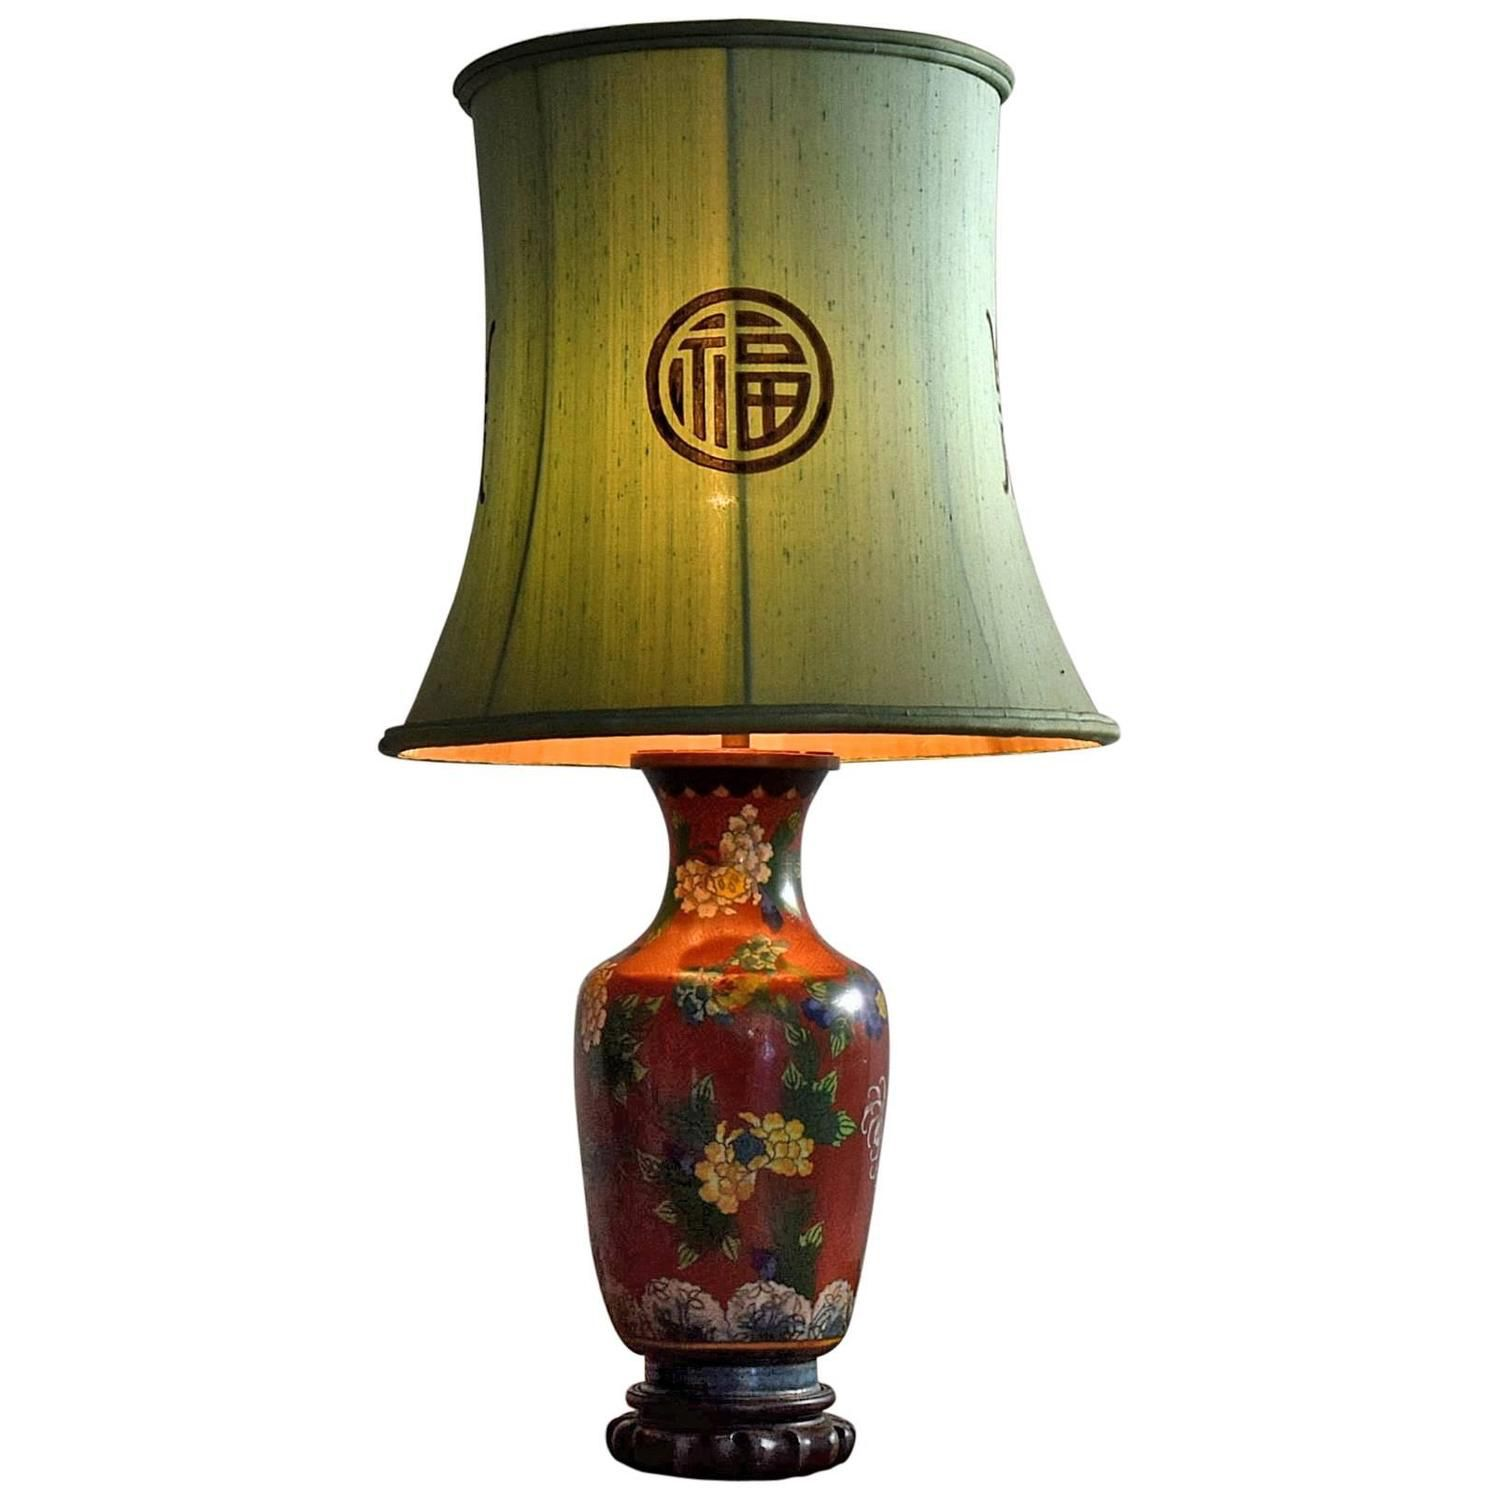 Mid century chinese ceramic cloisonn table lamp see more mid century chinese ceramic cloisonn table lamp see more antique and modern table lamps geotapseo Images